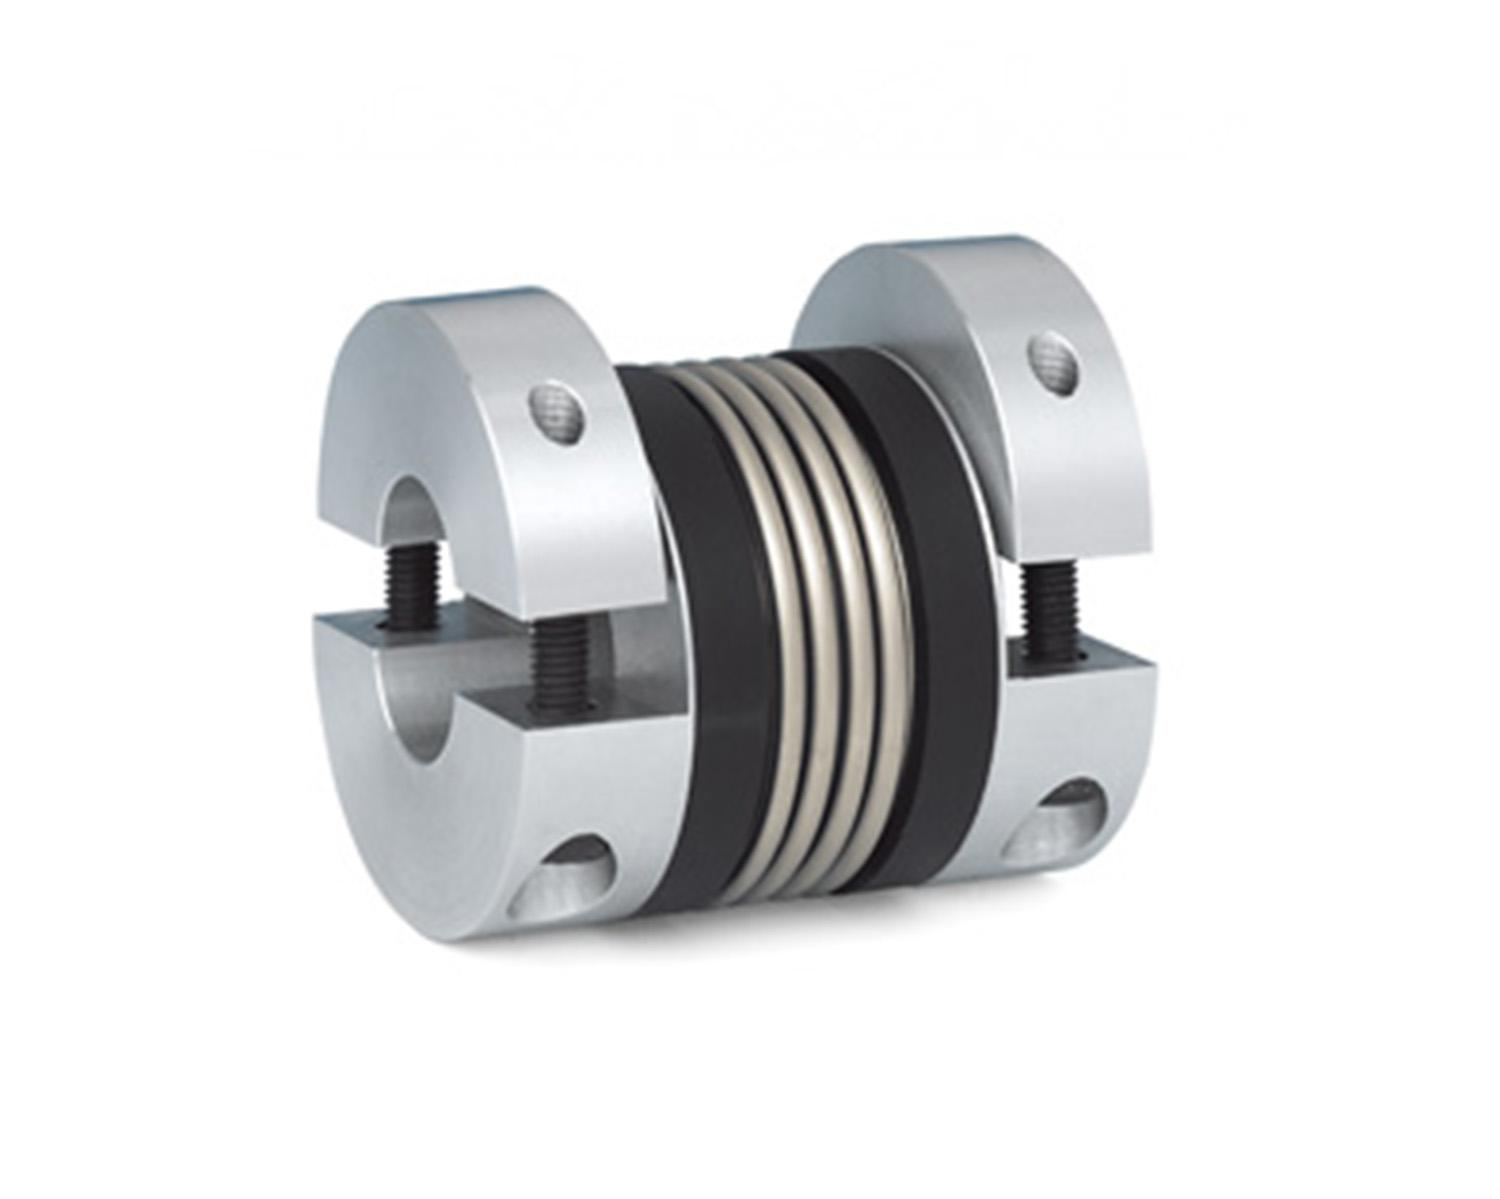 High quality precision couplings can be balanced for speeds of up to 80,000rpm